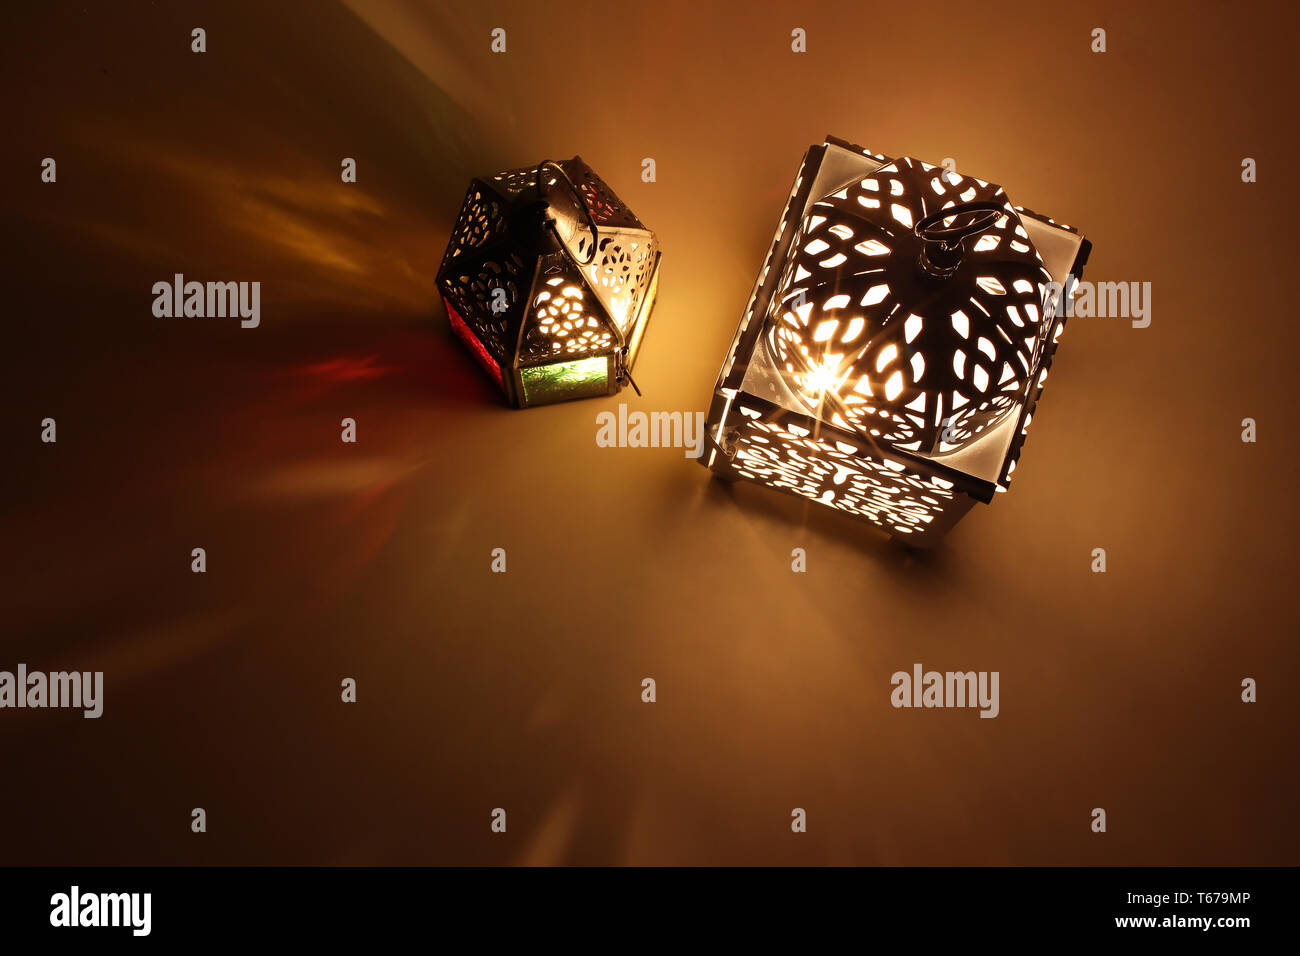 Couple of glowing Moroccan ornamental lanterns on table. Decorative golden shadows. Greeting card, invitation for Muslim holy month Ramadan Kareem - Stock Image